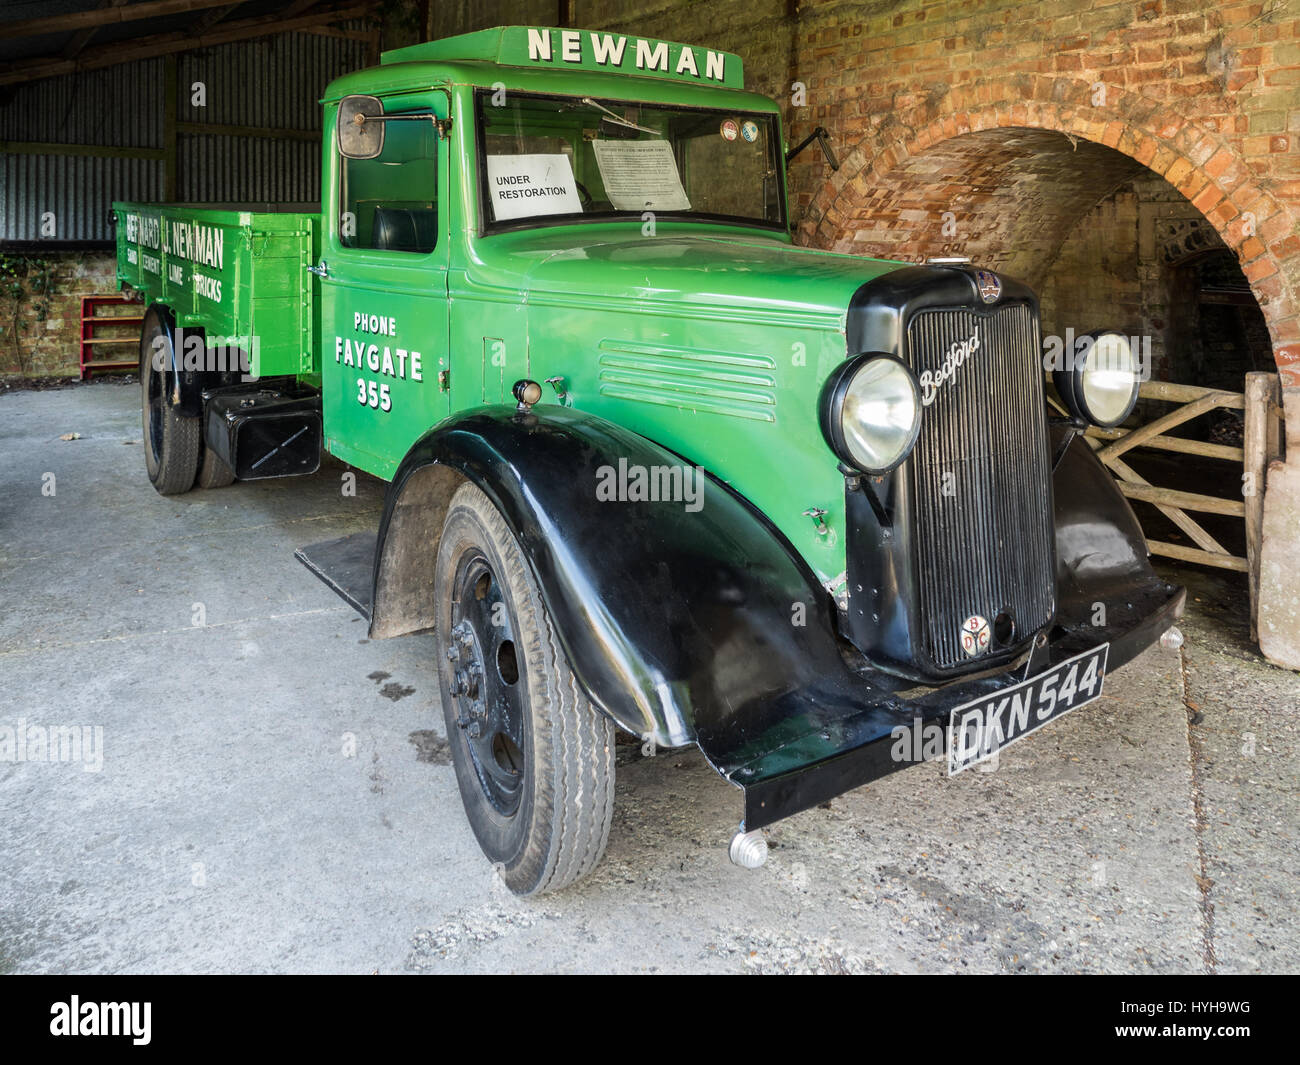 Pre-war 1930s Commercial Bedford W-Series 2-Ton Truck at Amberley Working Museum in West Sussex, England - Stock Image